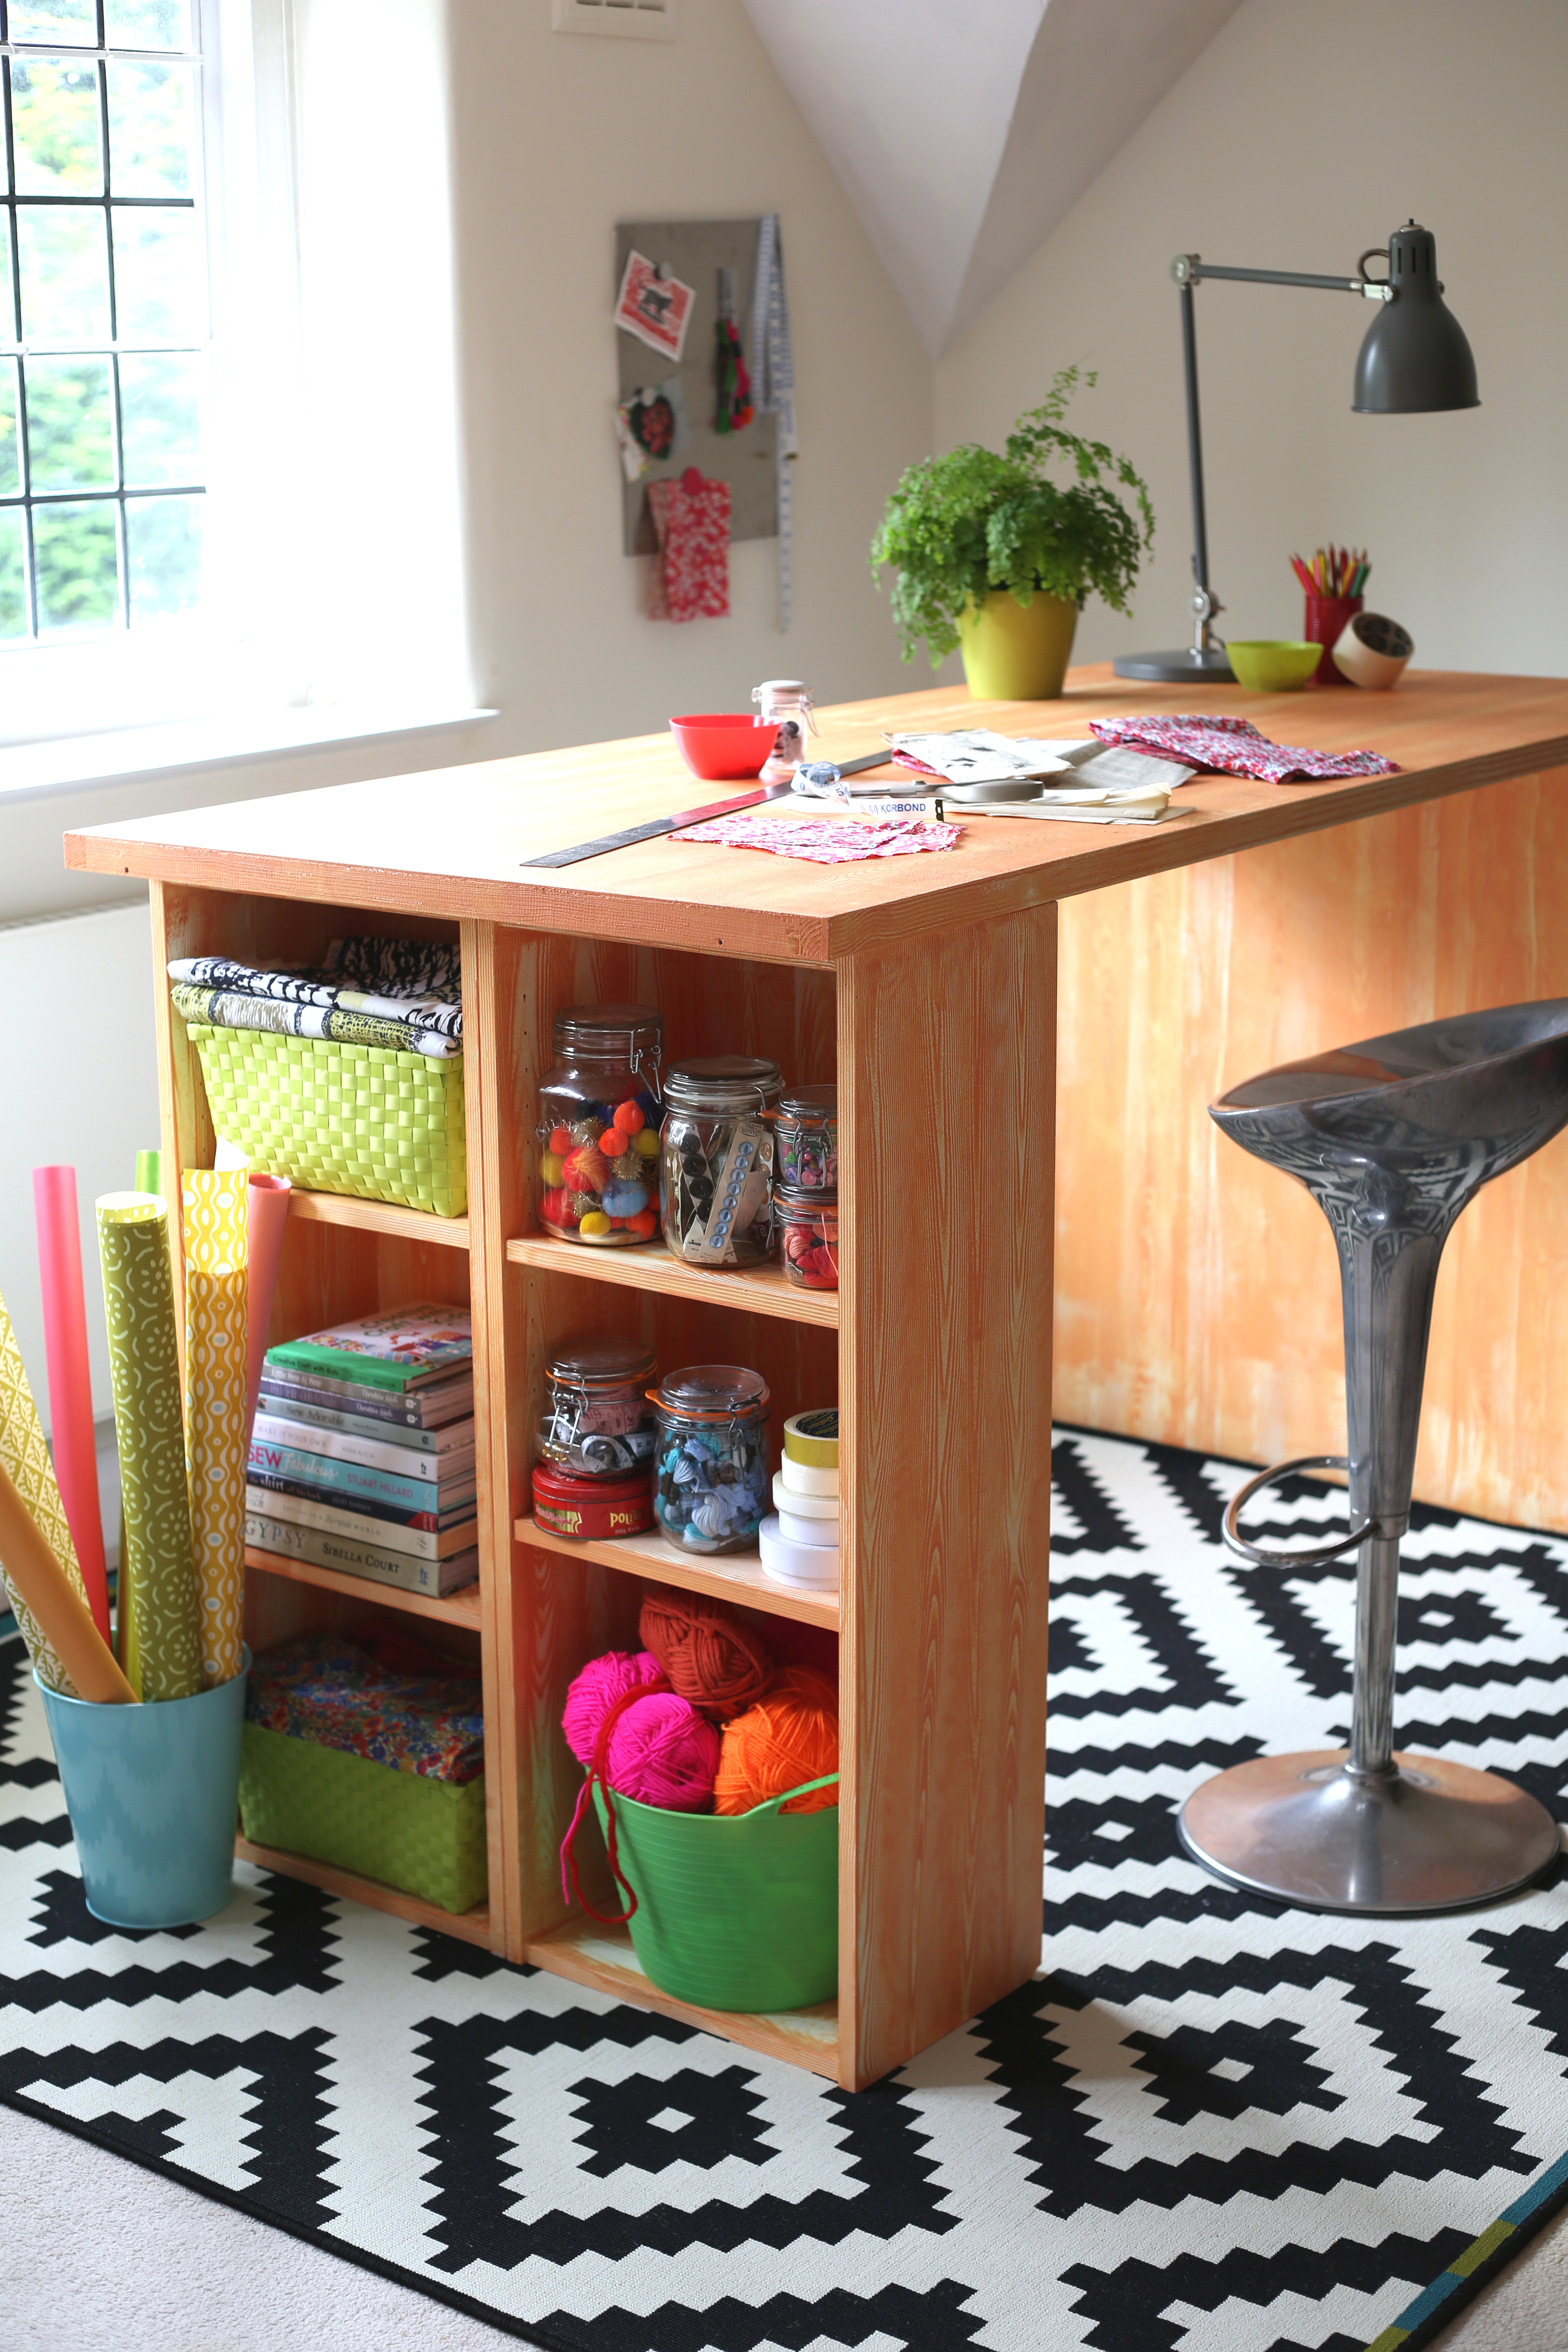 #A67125 Ikea Billy Bookcase Hack – Funky Desk with 3840x5760 px of Most Effective Ikea Desk And Bookcase 57603840 wallpaper @ avoidforclosure.info